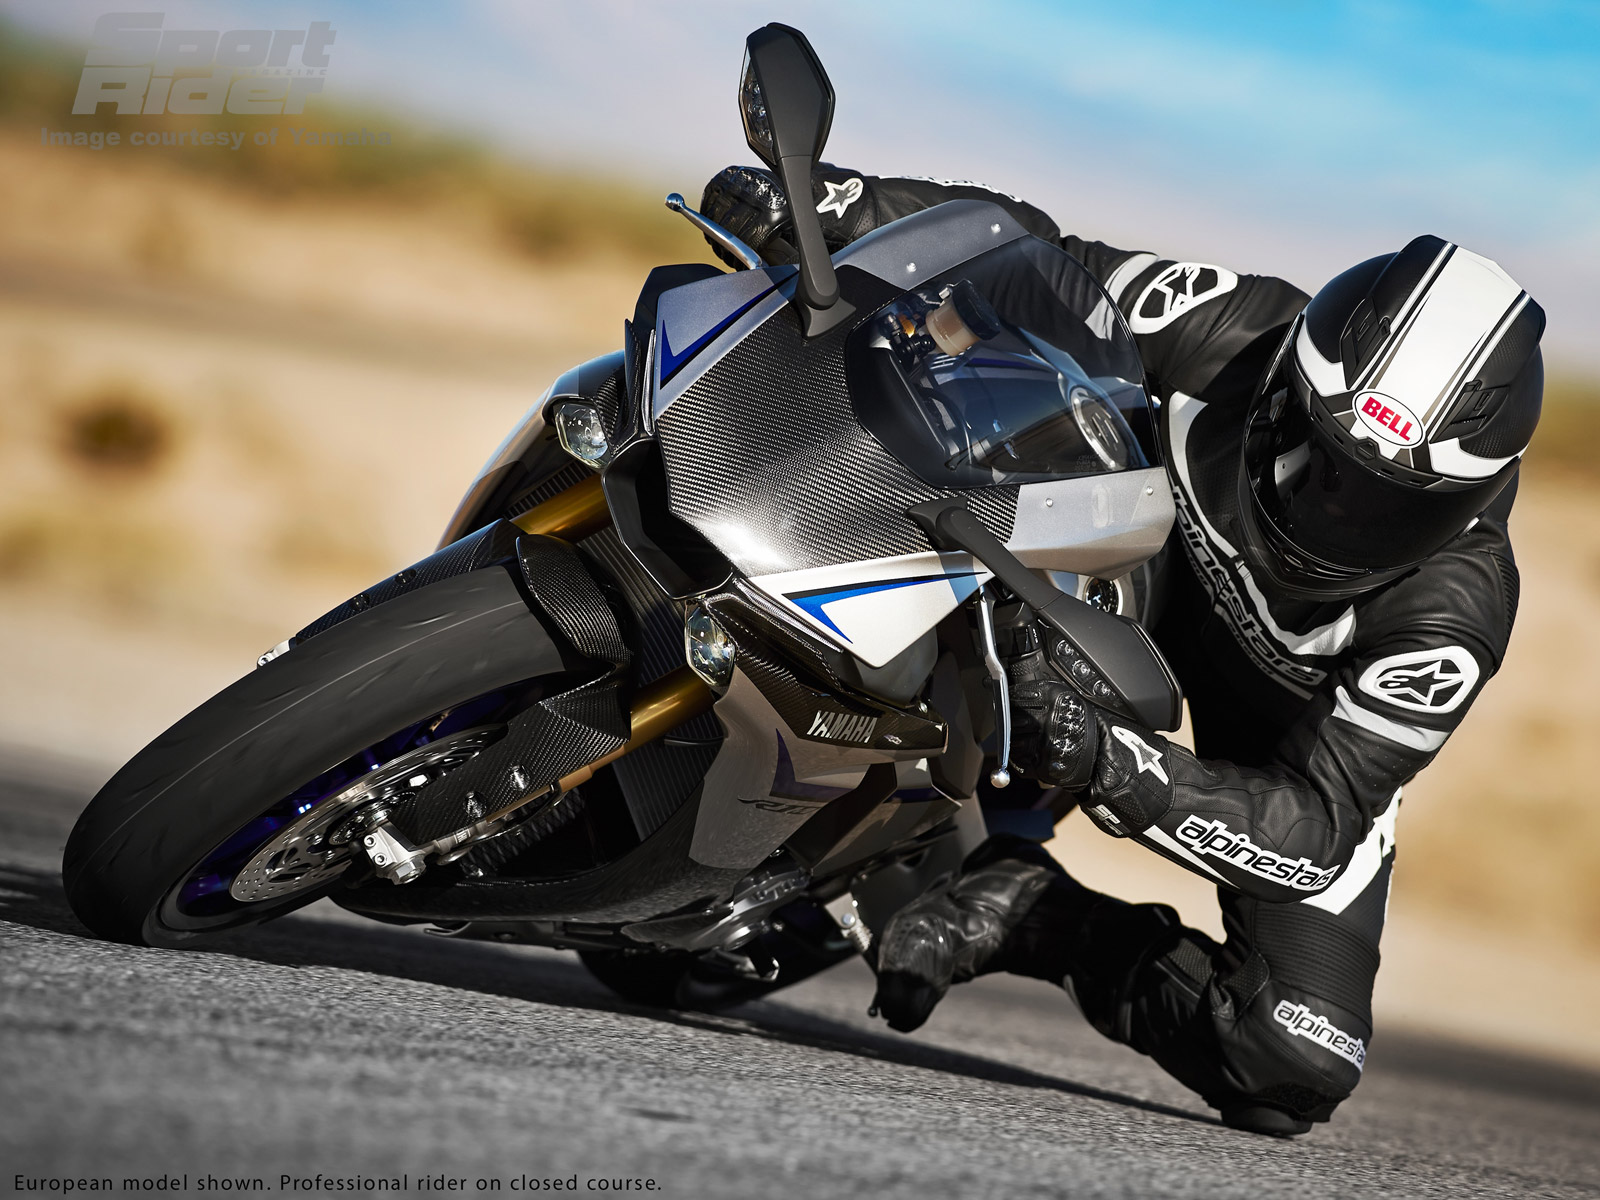 Image Gallery The 2015 Yamaha Yzf R1 And R1m In Action Cycle World